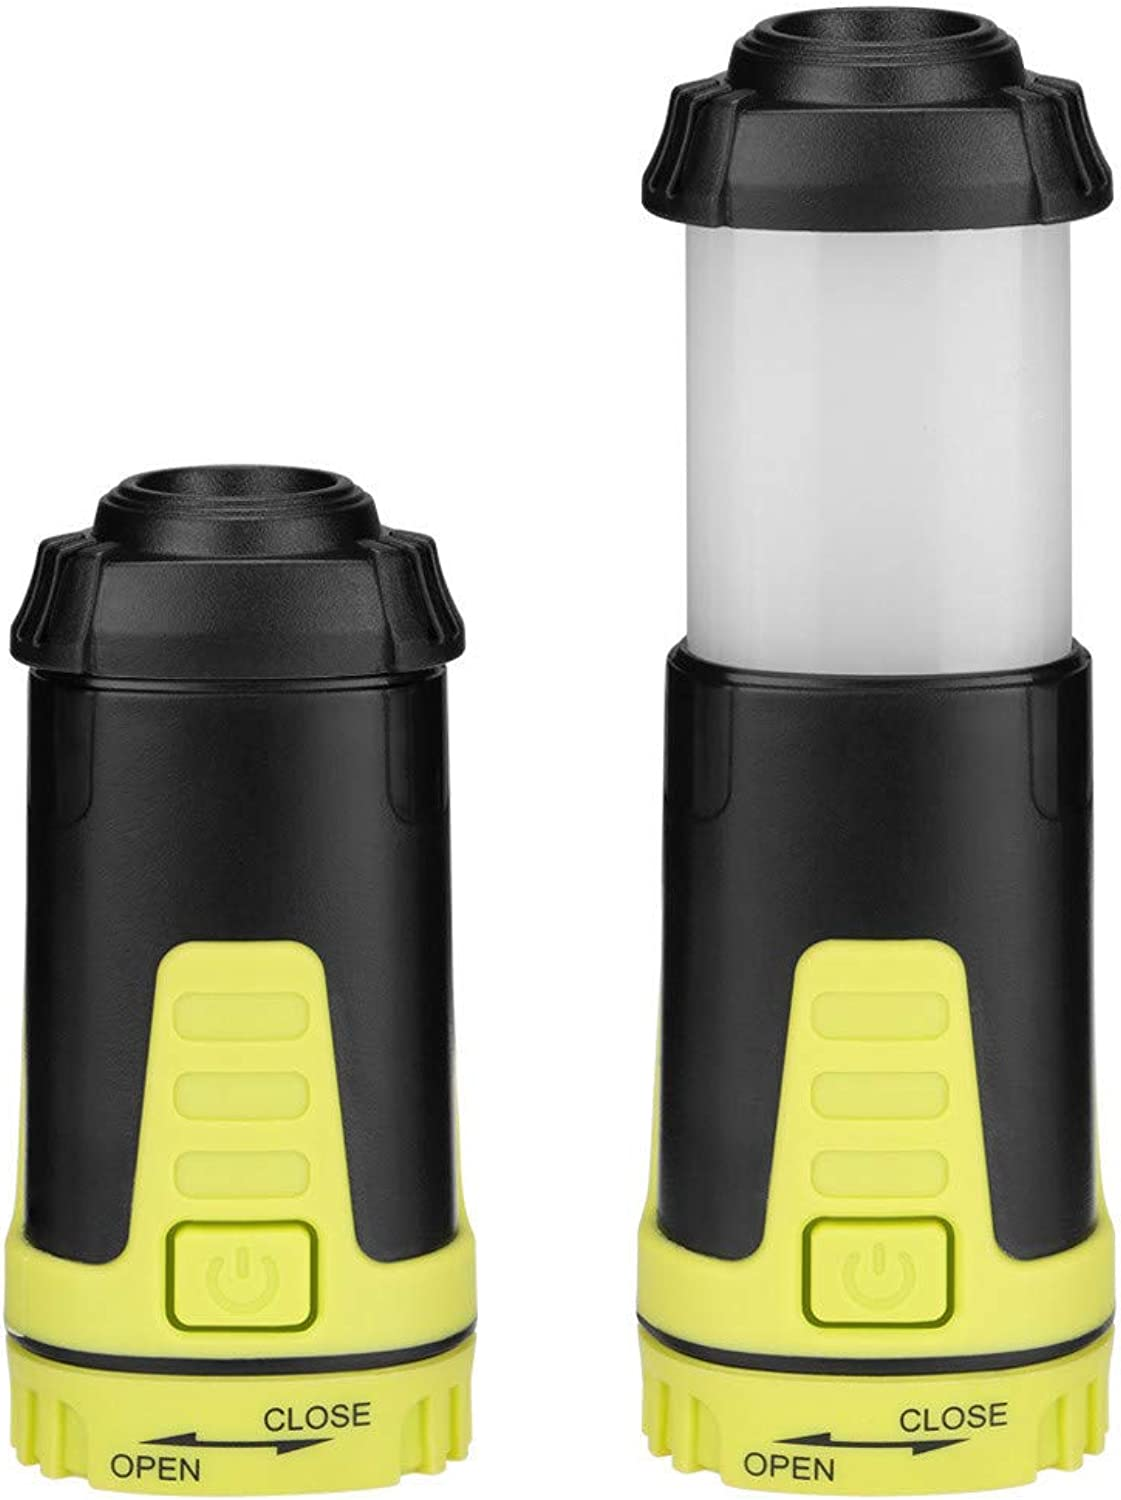 LED Portable Camping Lantern Camping ABS Dry Battery Power Working Light Magnetic Lamp Light Stretch Working Night Light